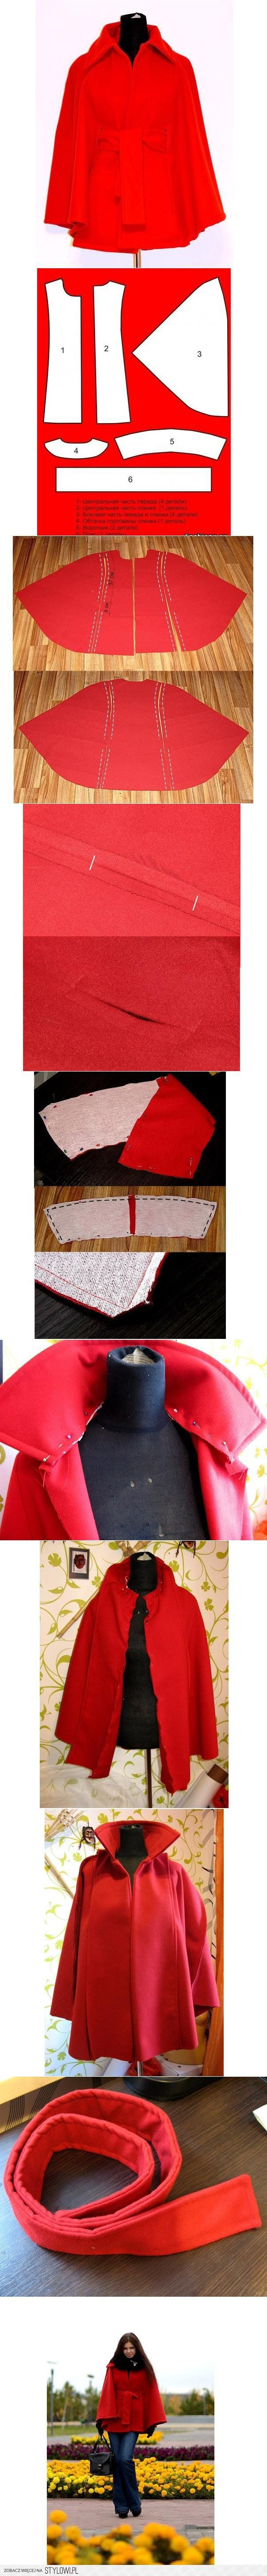 DIY Fashion Cape DIY Projects | UsefulDIY.com na Stylowi.pl